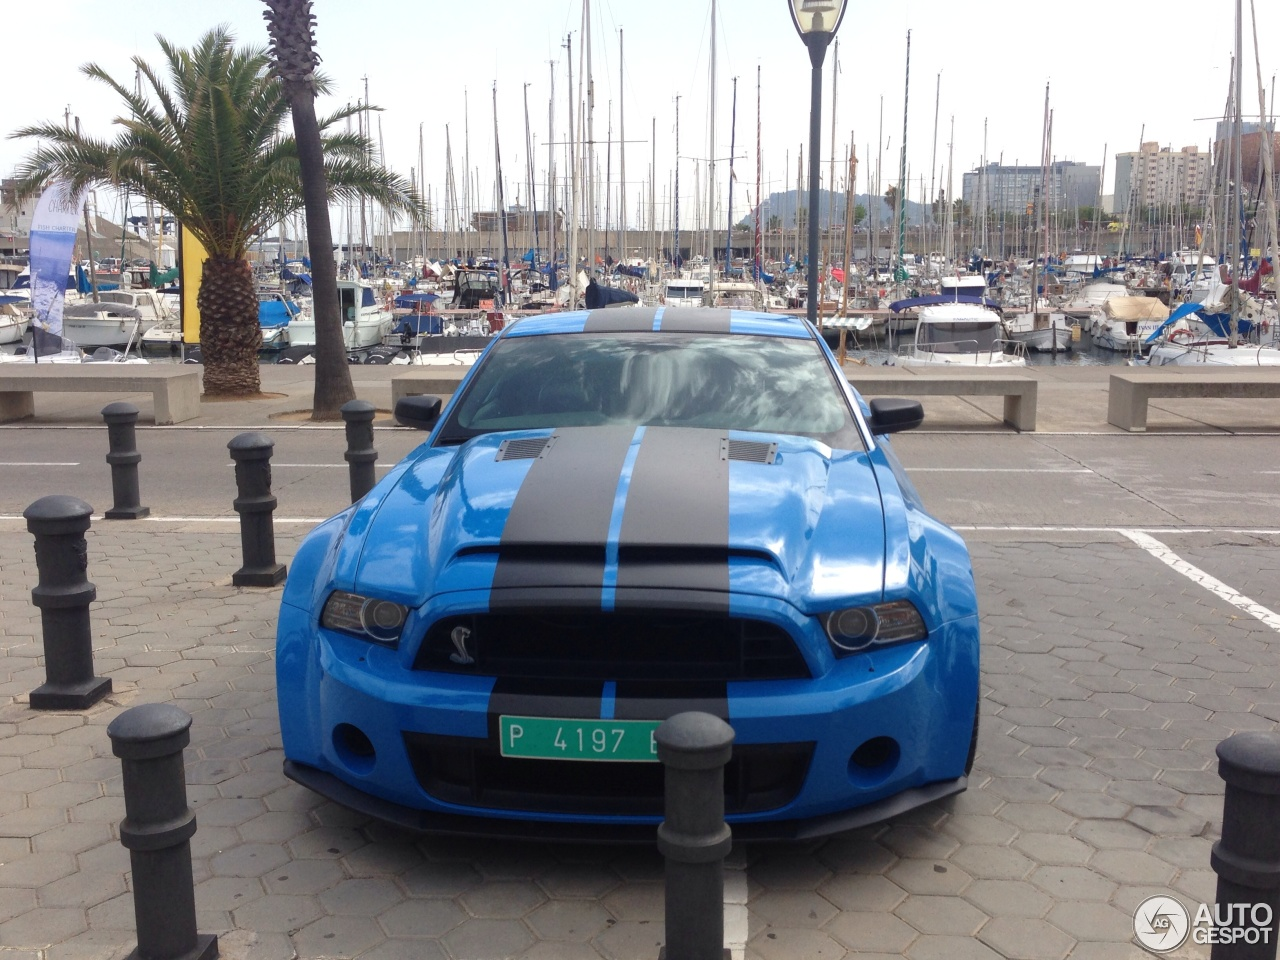 Ford Mustang Shelby GT500 2013 - 19 juillet 2014 - Autogespot